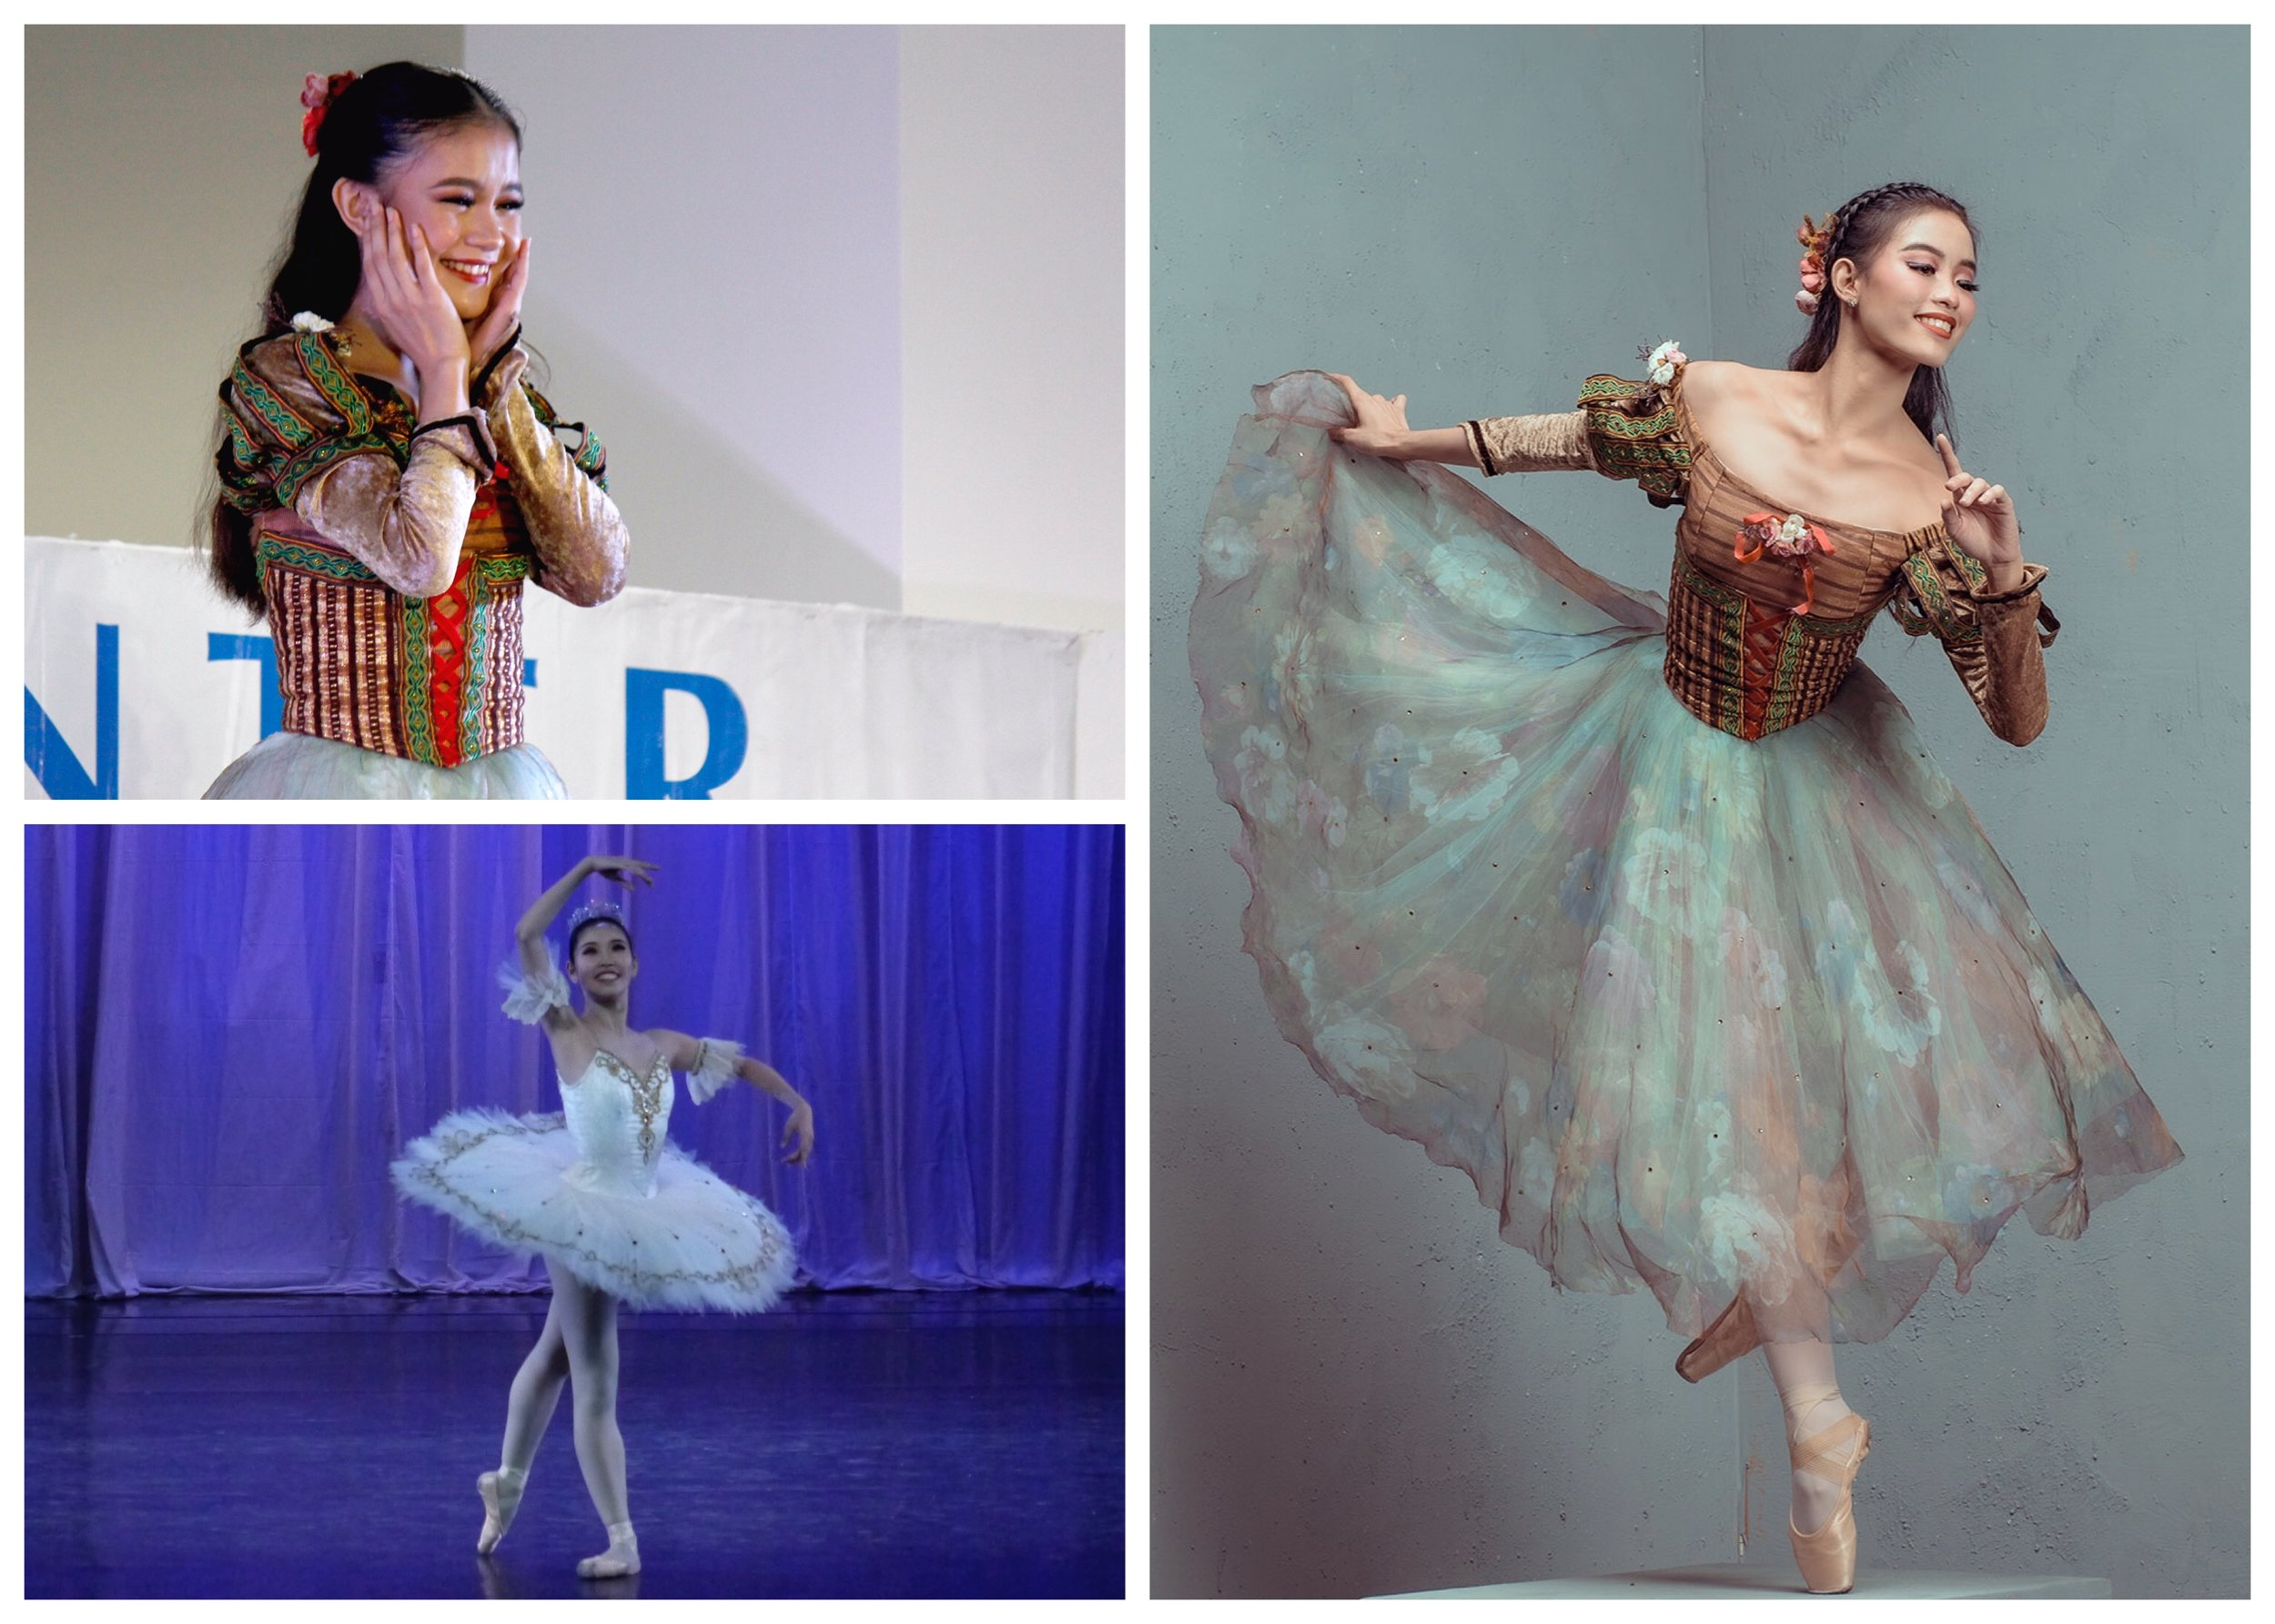 The three Snow Whites: (top left) company artist Shaira Comeros, (bottom left) company artist Akari Ida; (right) principal dancer Joan Emery Sia. Photos by Jimmy Villanueva, Erickson Dela Cruz, and Jojit Lorenzo